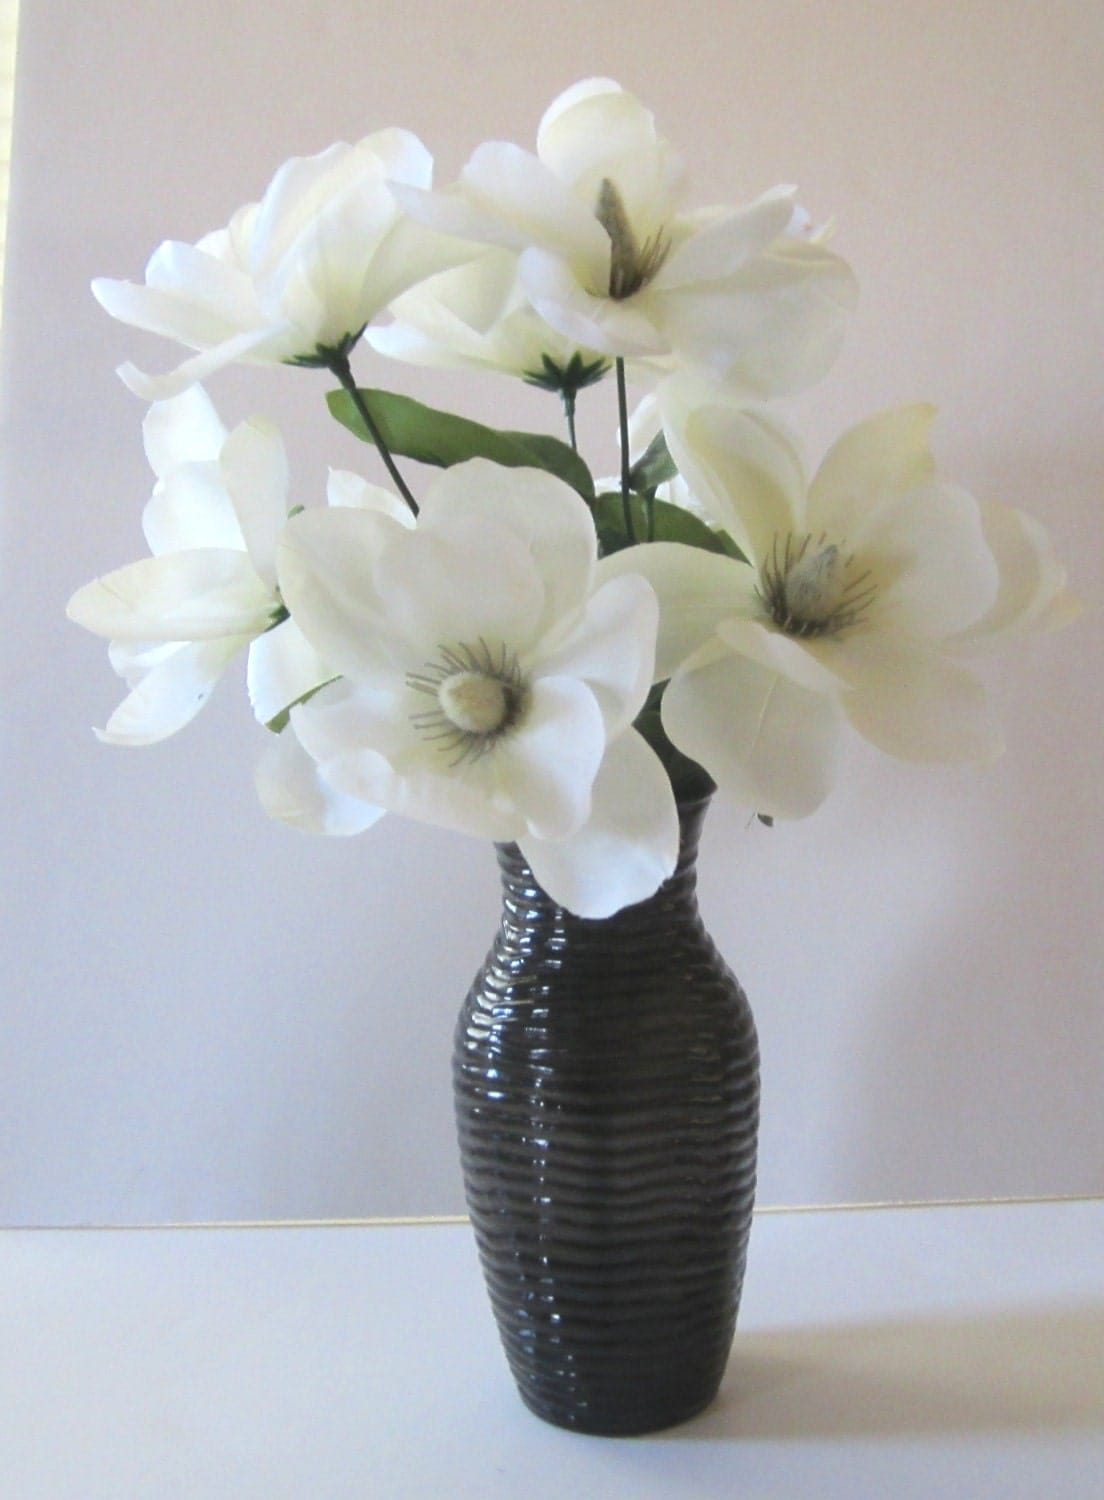 Silk floral arrangement in a black vase with white flowers - Flower arrangements for vases ...